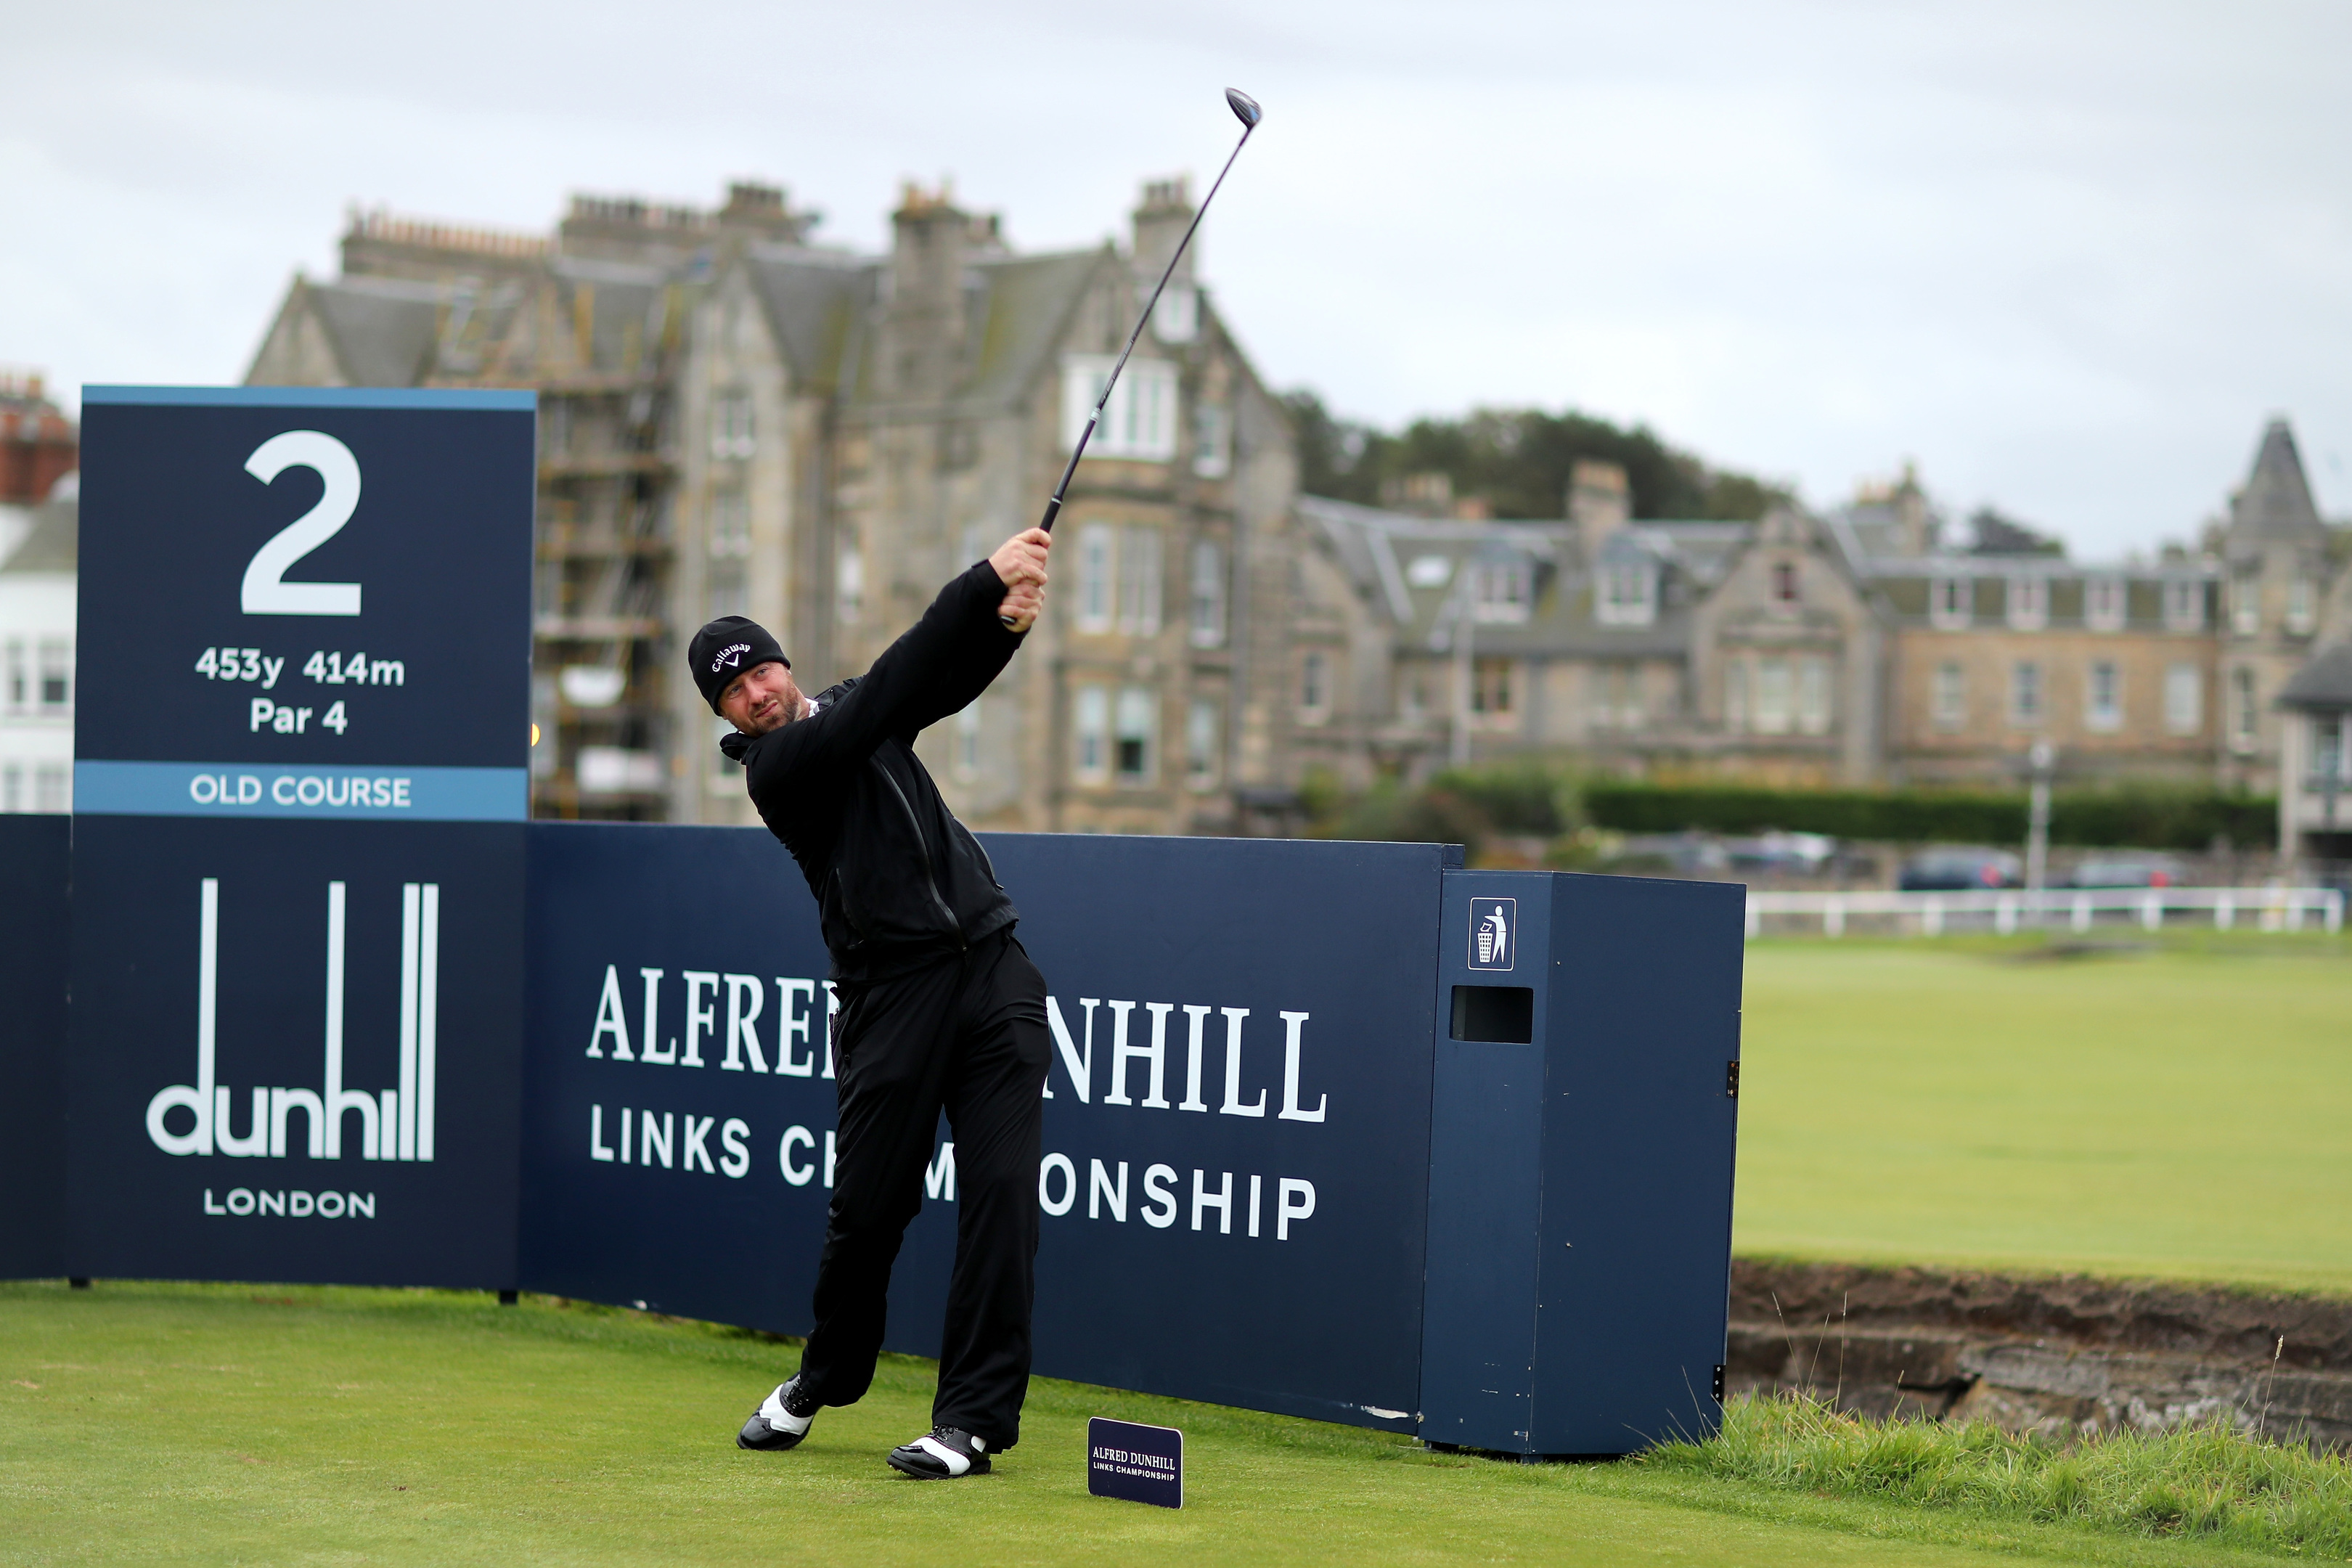 Craig Lee at the Dunhill Links, where a 24th place finish helped his Tour card campaign.